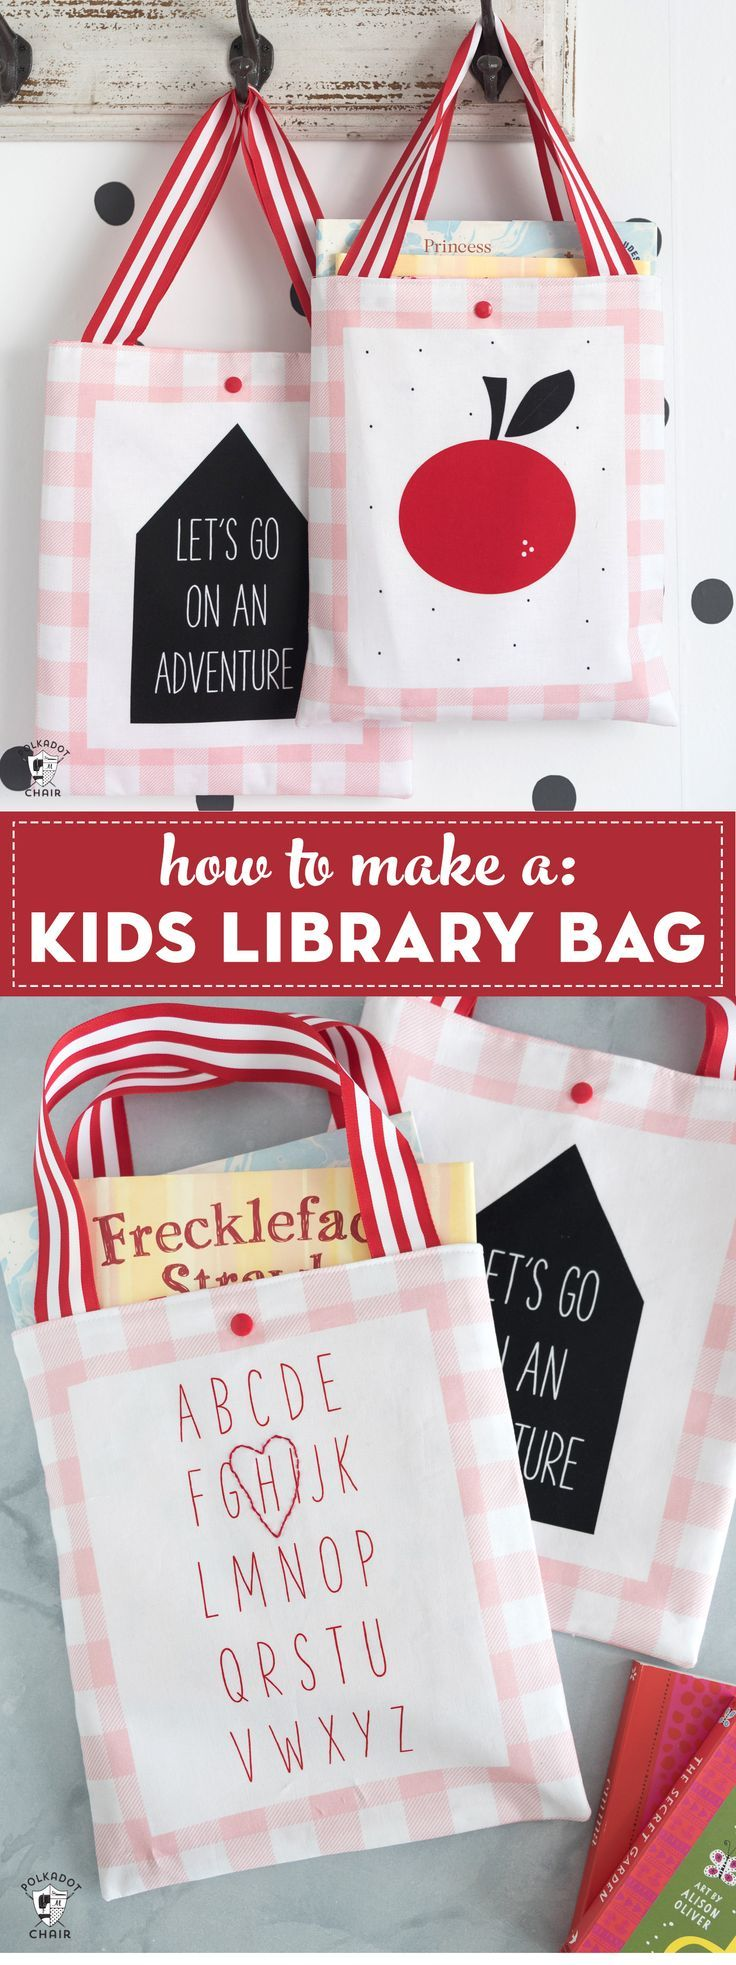 Free sewing pattern for a kids library bag. An easy book bag tutorial. So cute! ...